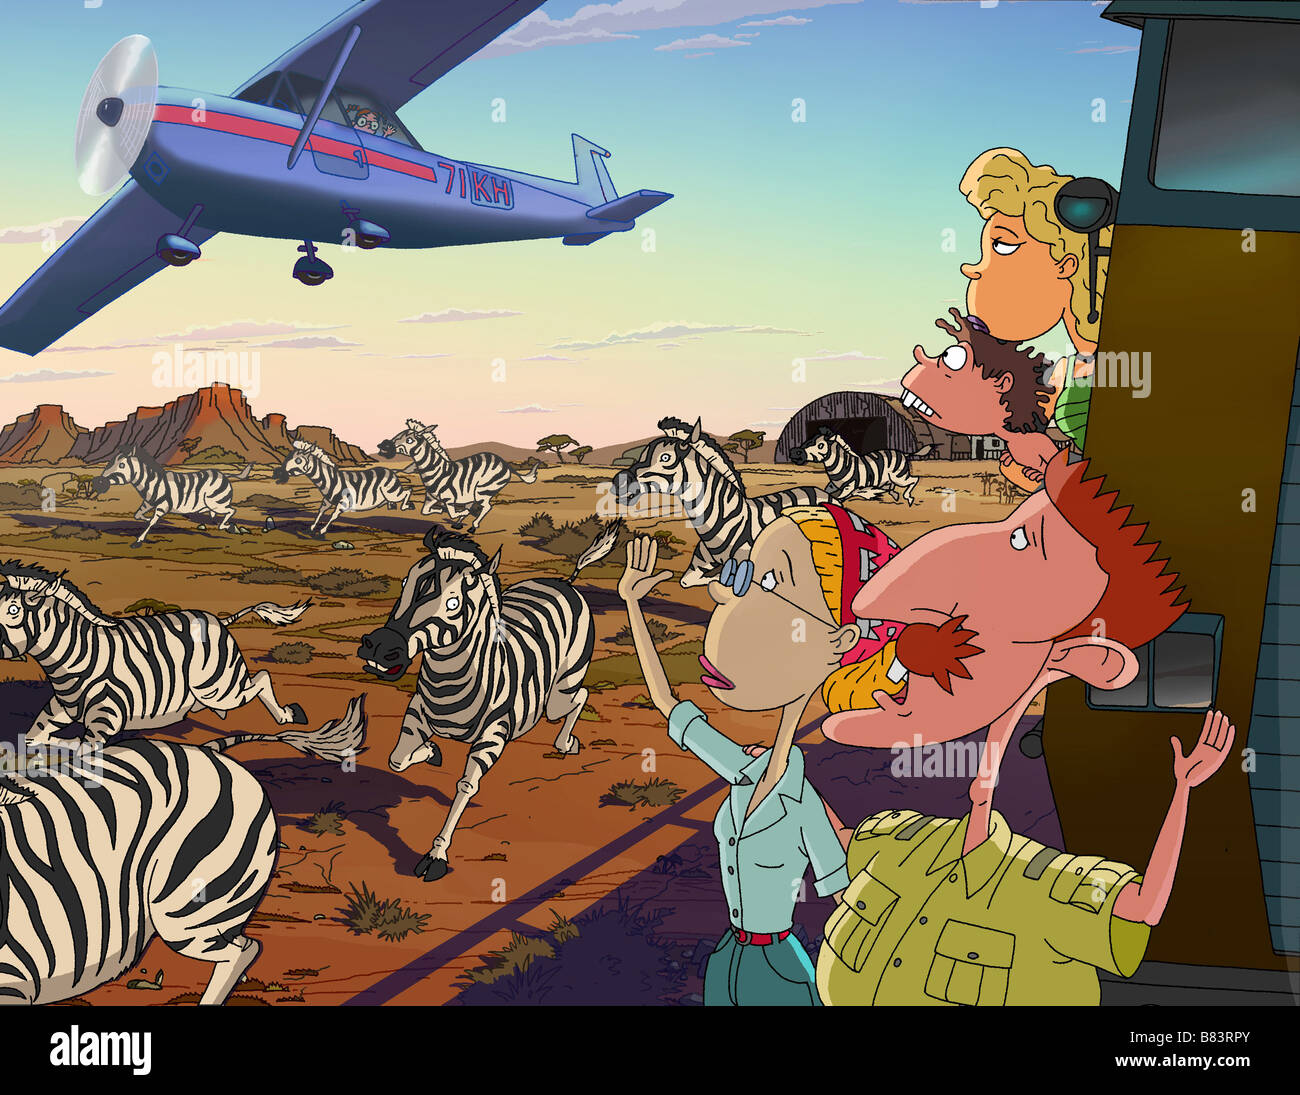 The Wild Thornberrys Movie  Year : 2002 USA Director : Cathy Malkasian,  Jeff McGrath Animation - Stock Image